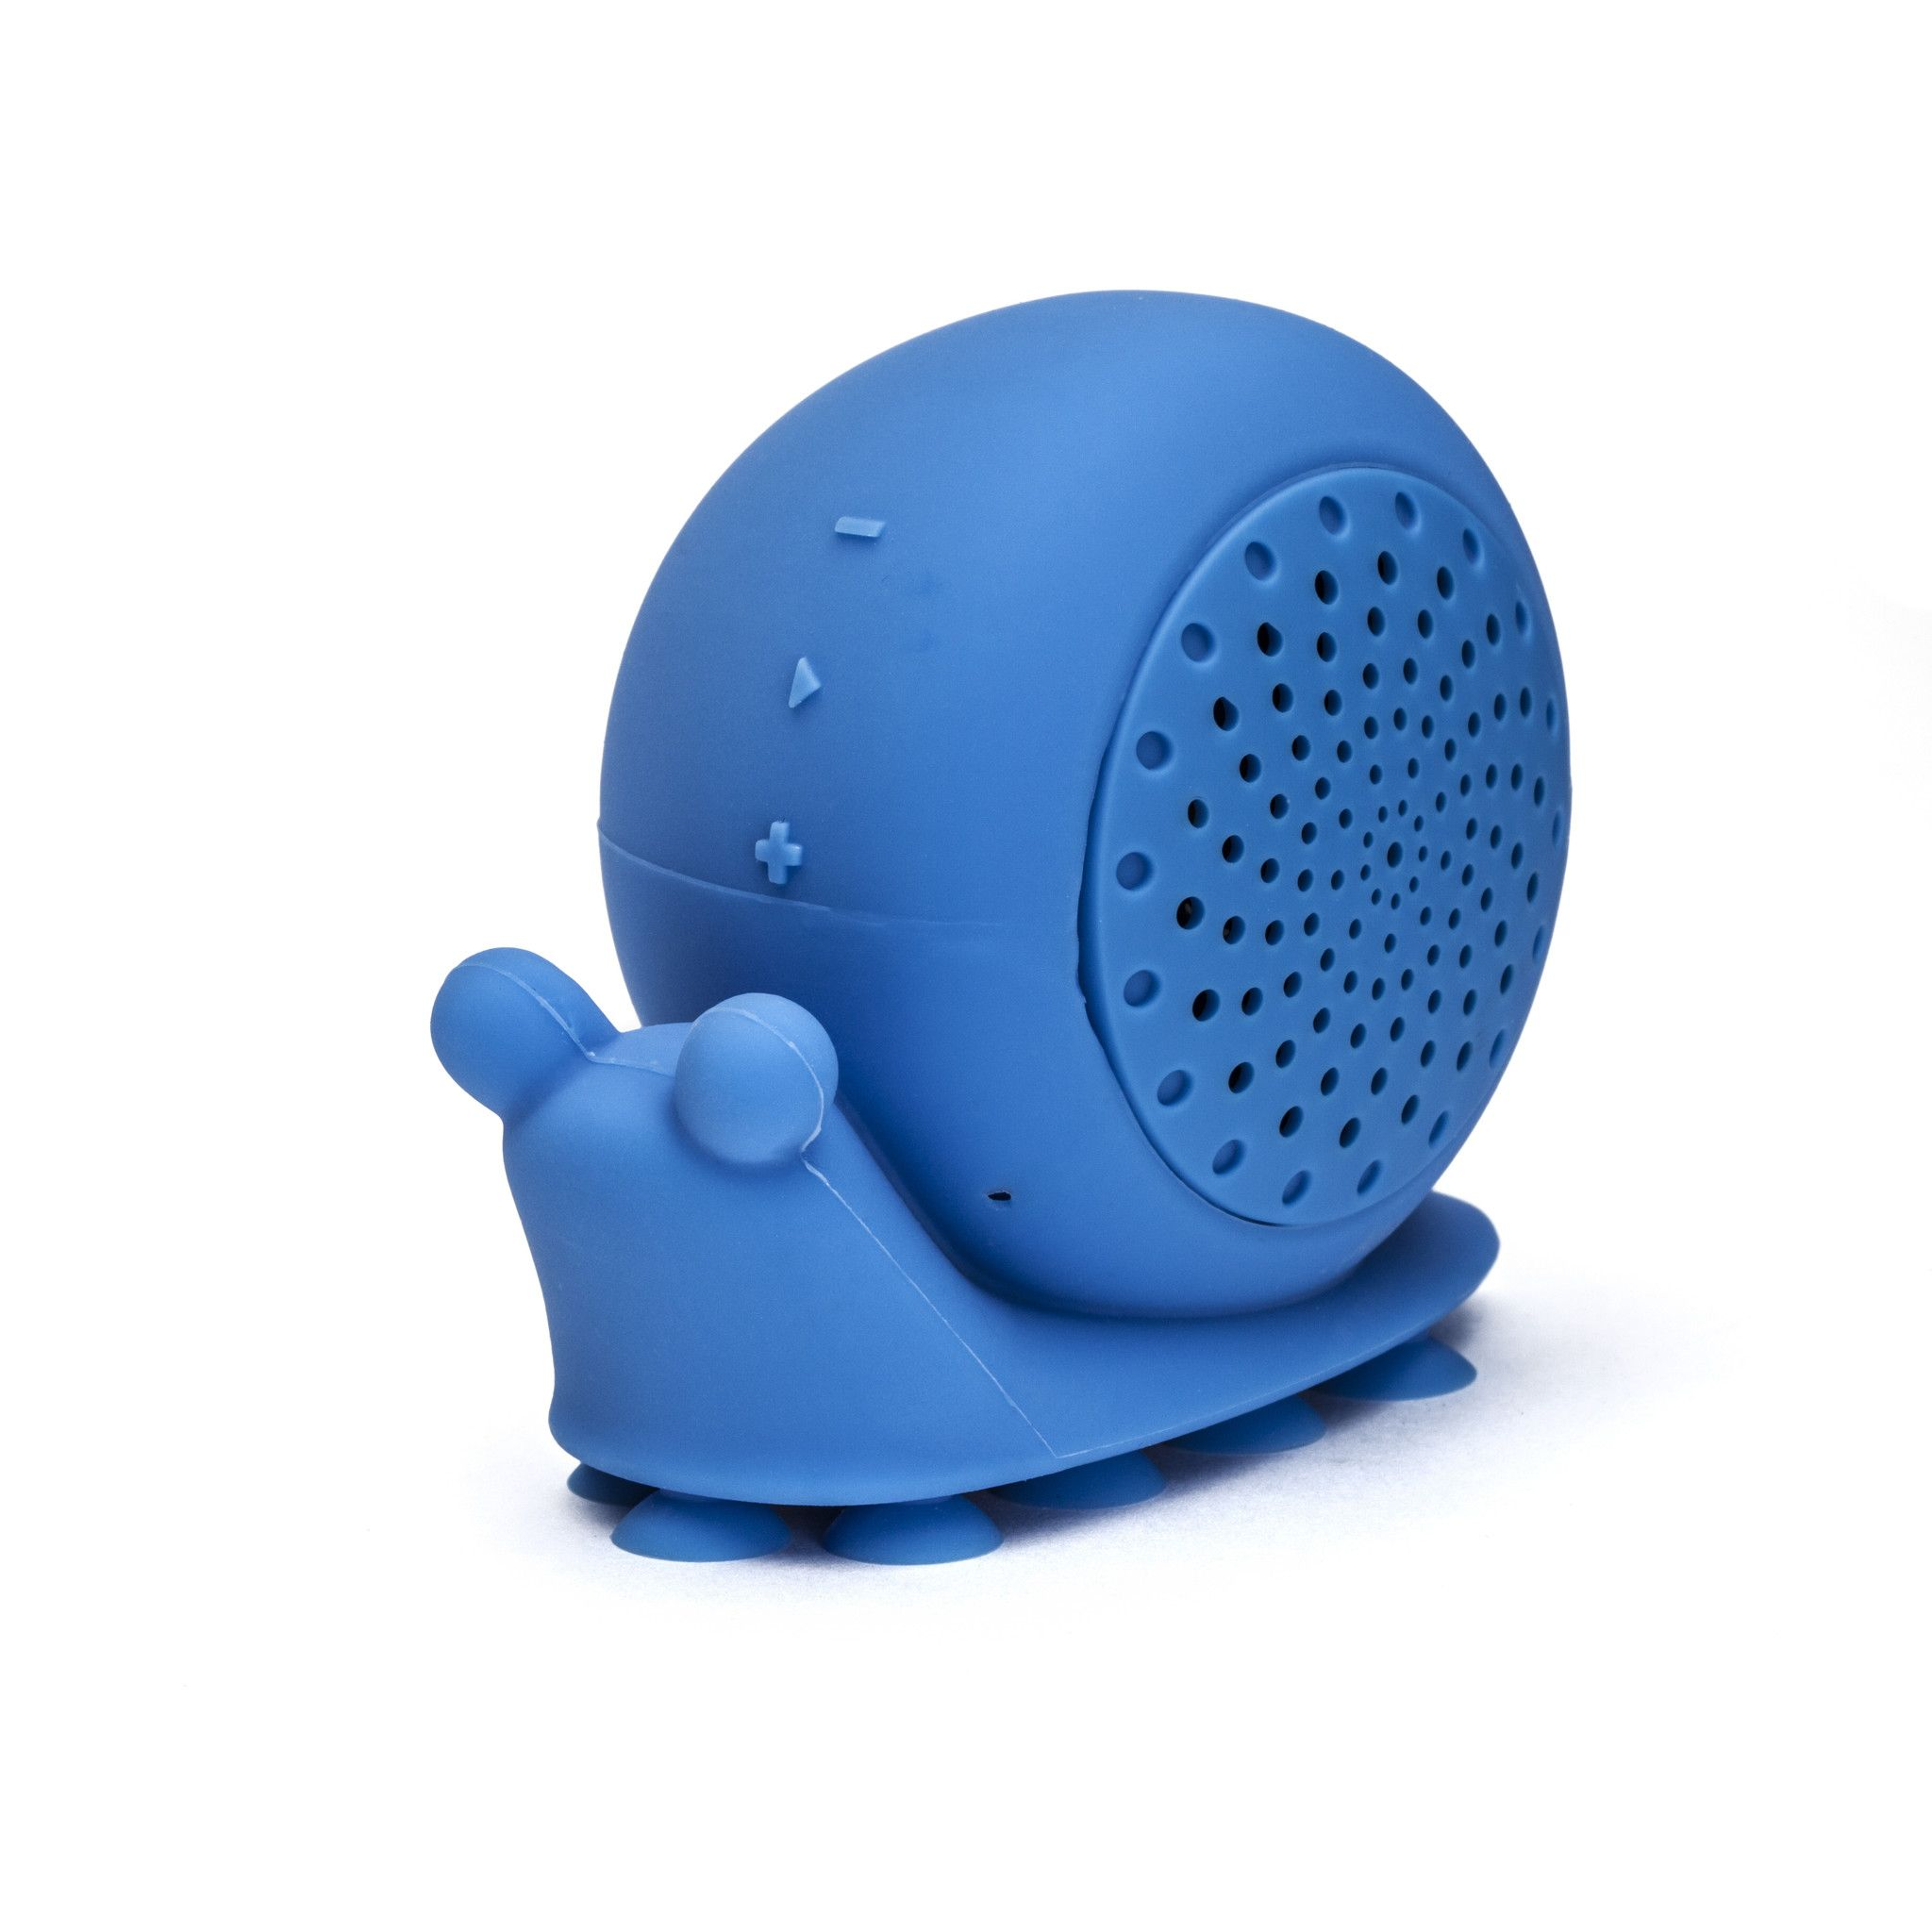 Bluetooth Shower Speaker Creatures (snails, octopus, & turtles) | This is awesome! I want a shower snail!